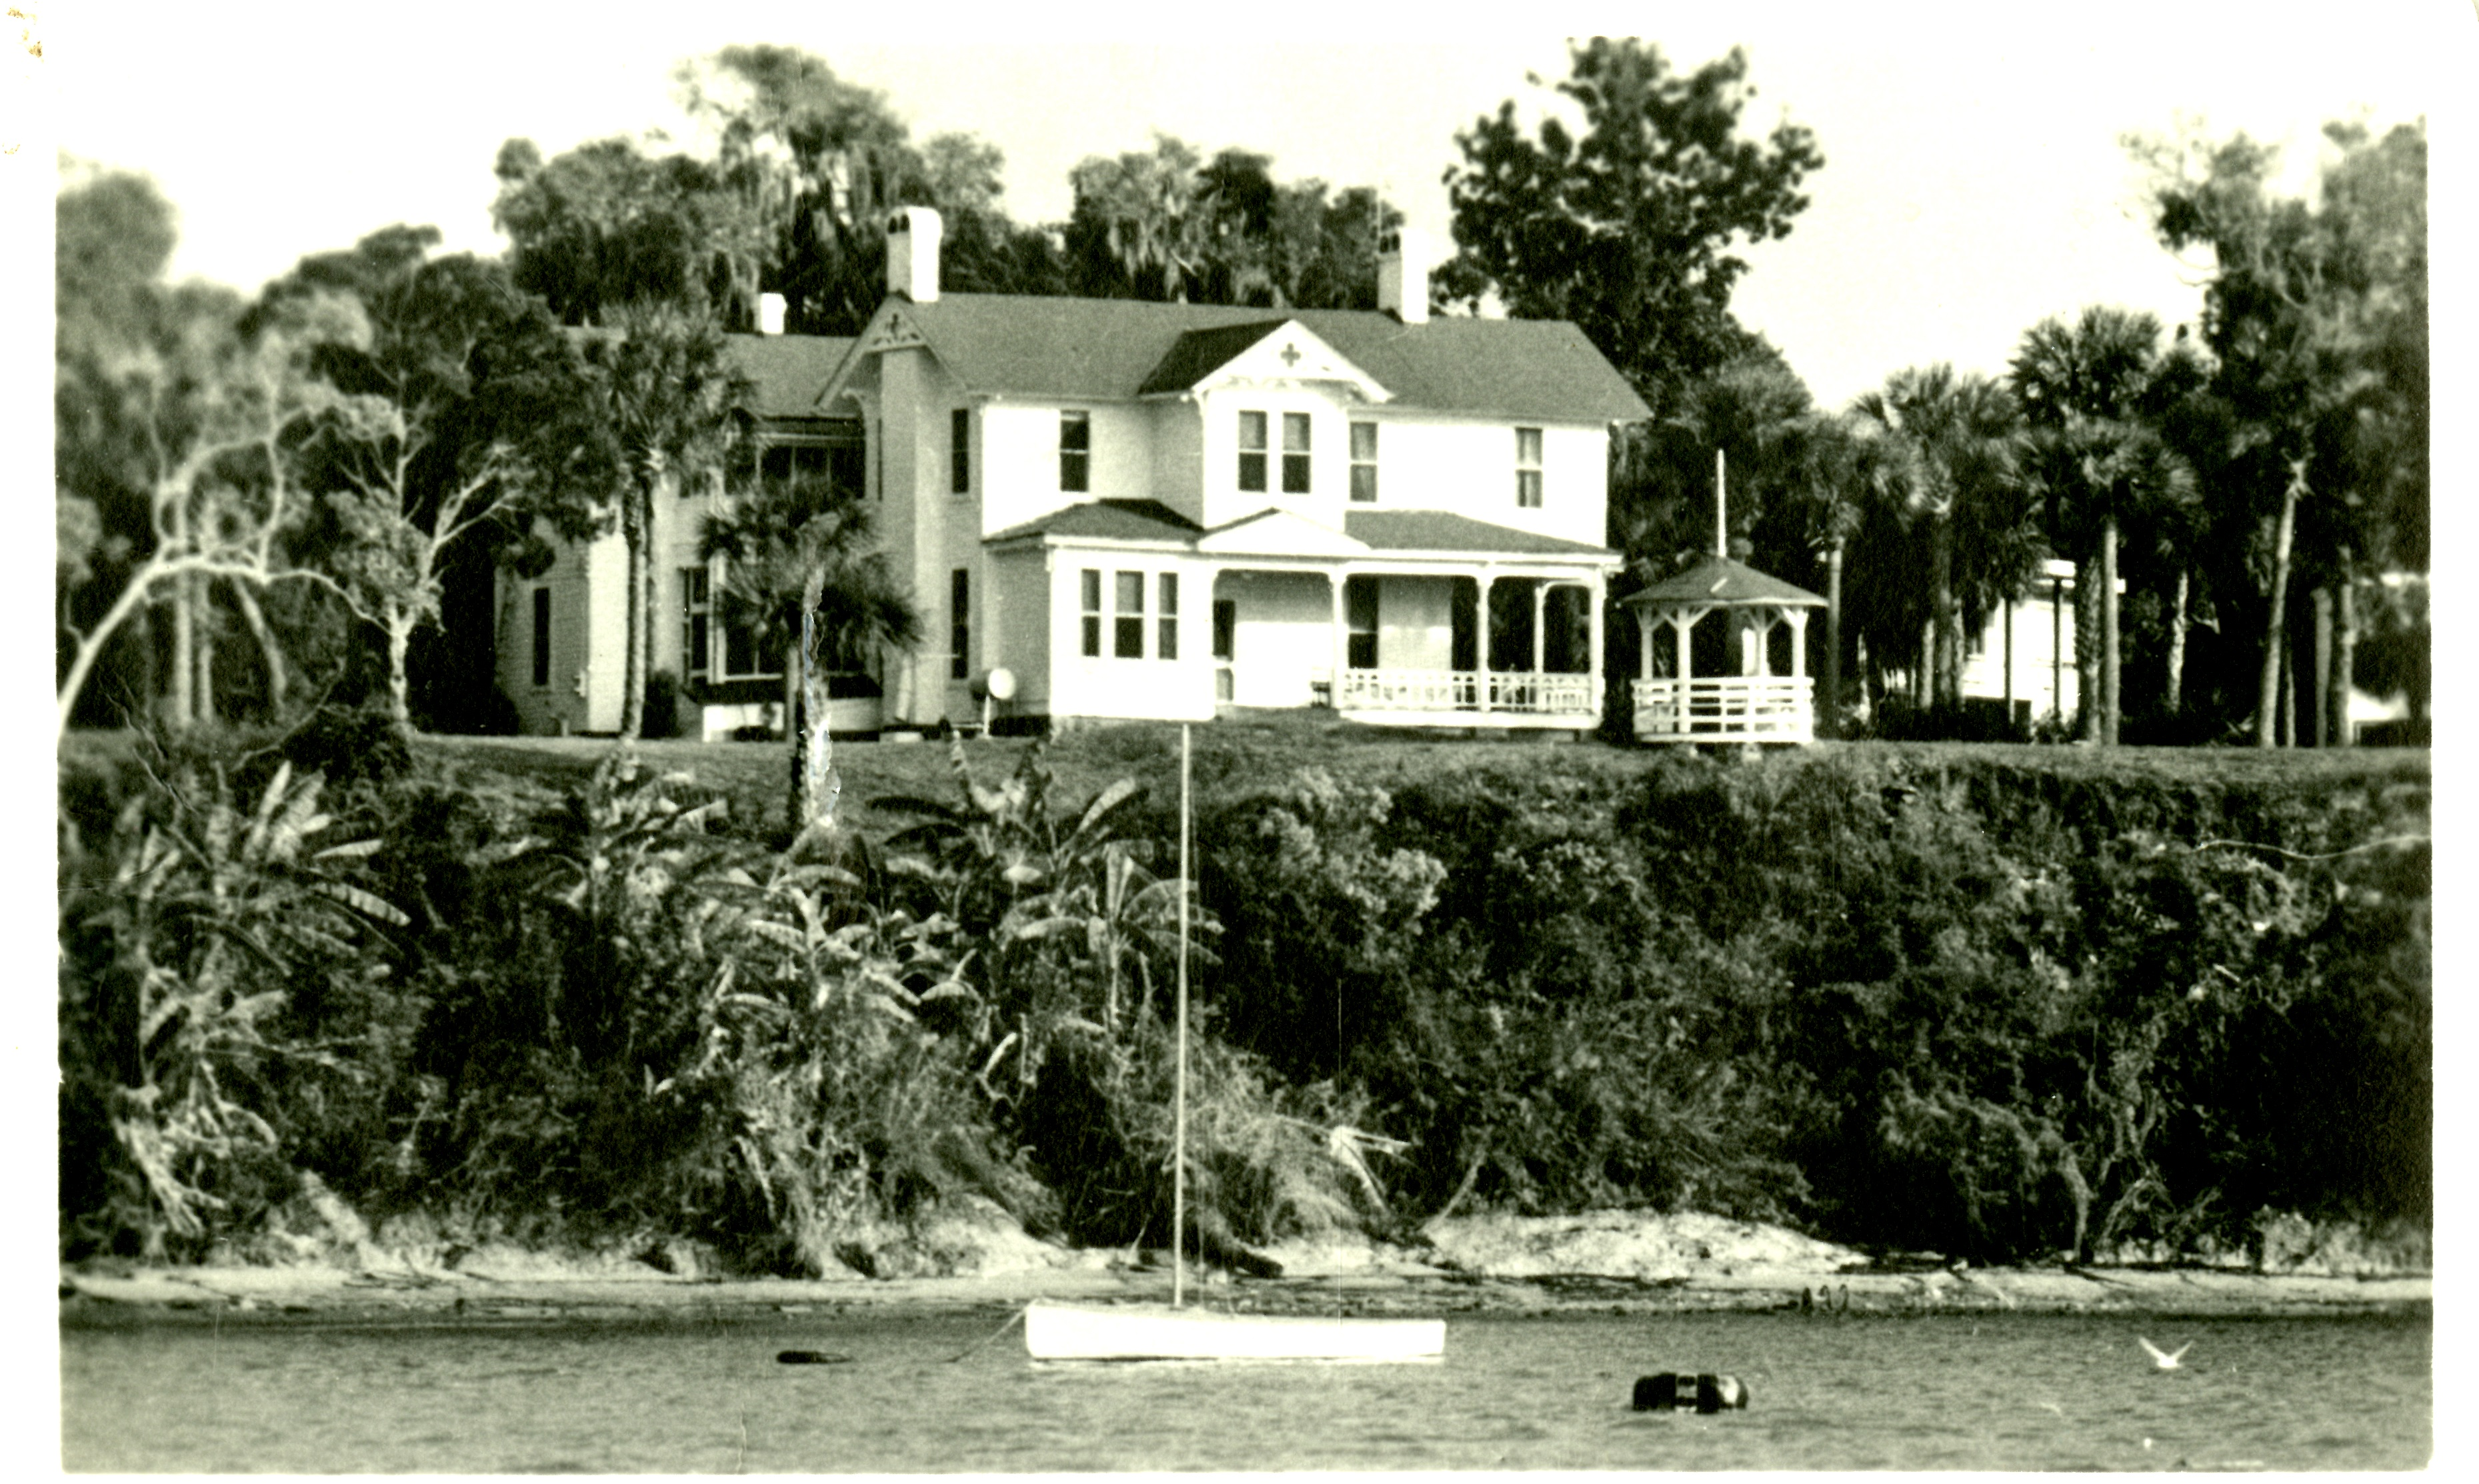 House of Seven Gables at its original location located on Clearwater Bluffs, c. 1960.